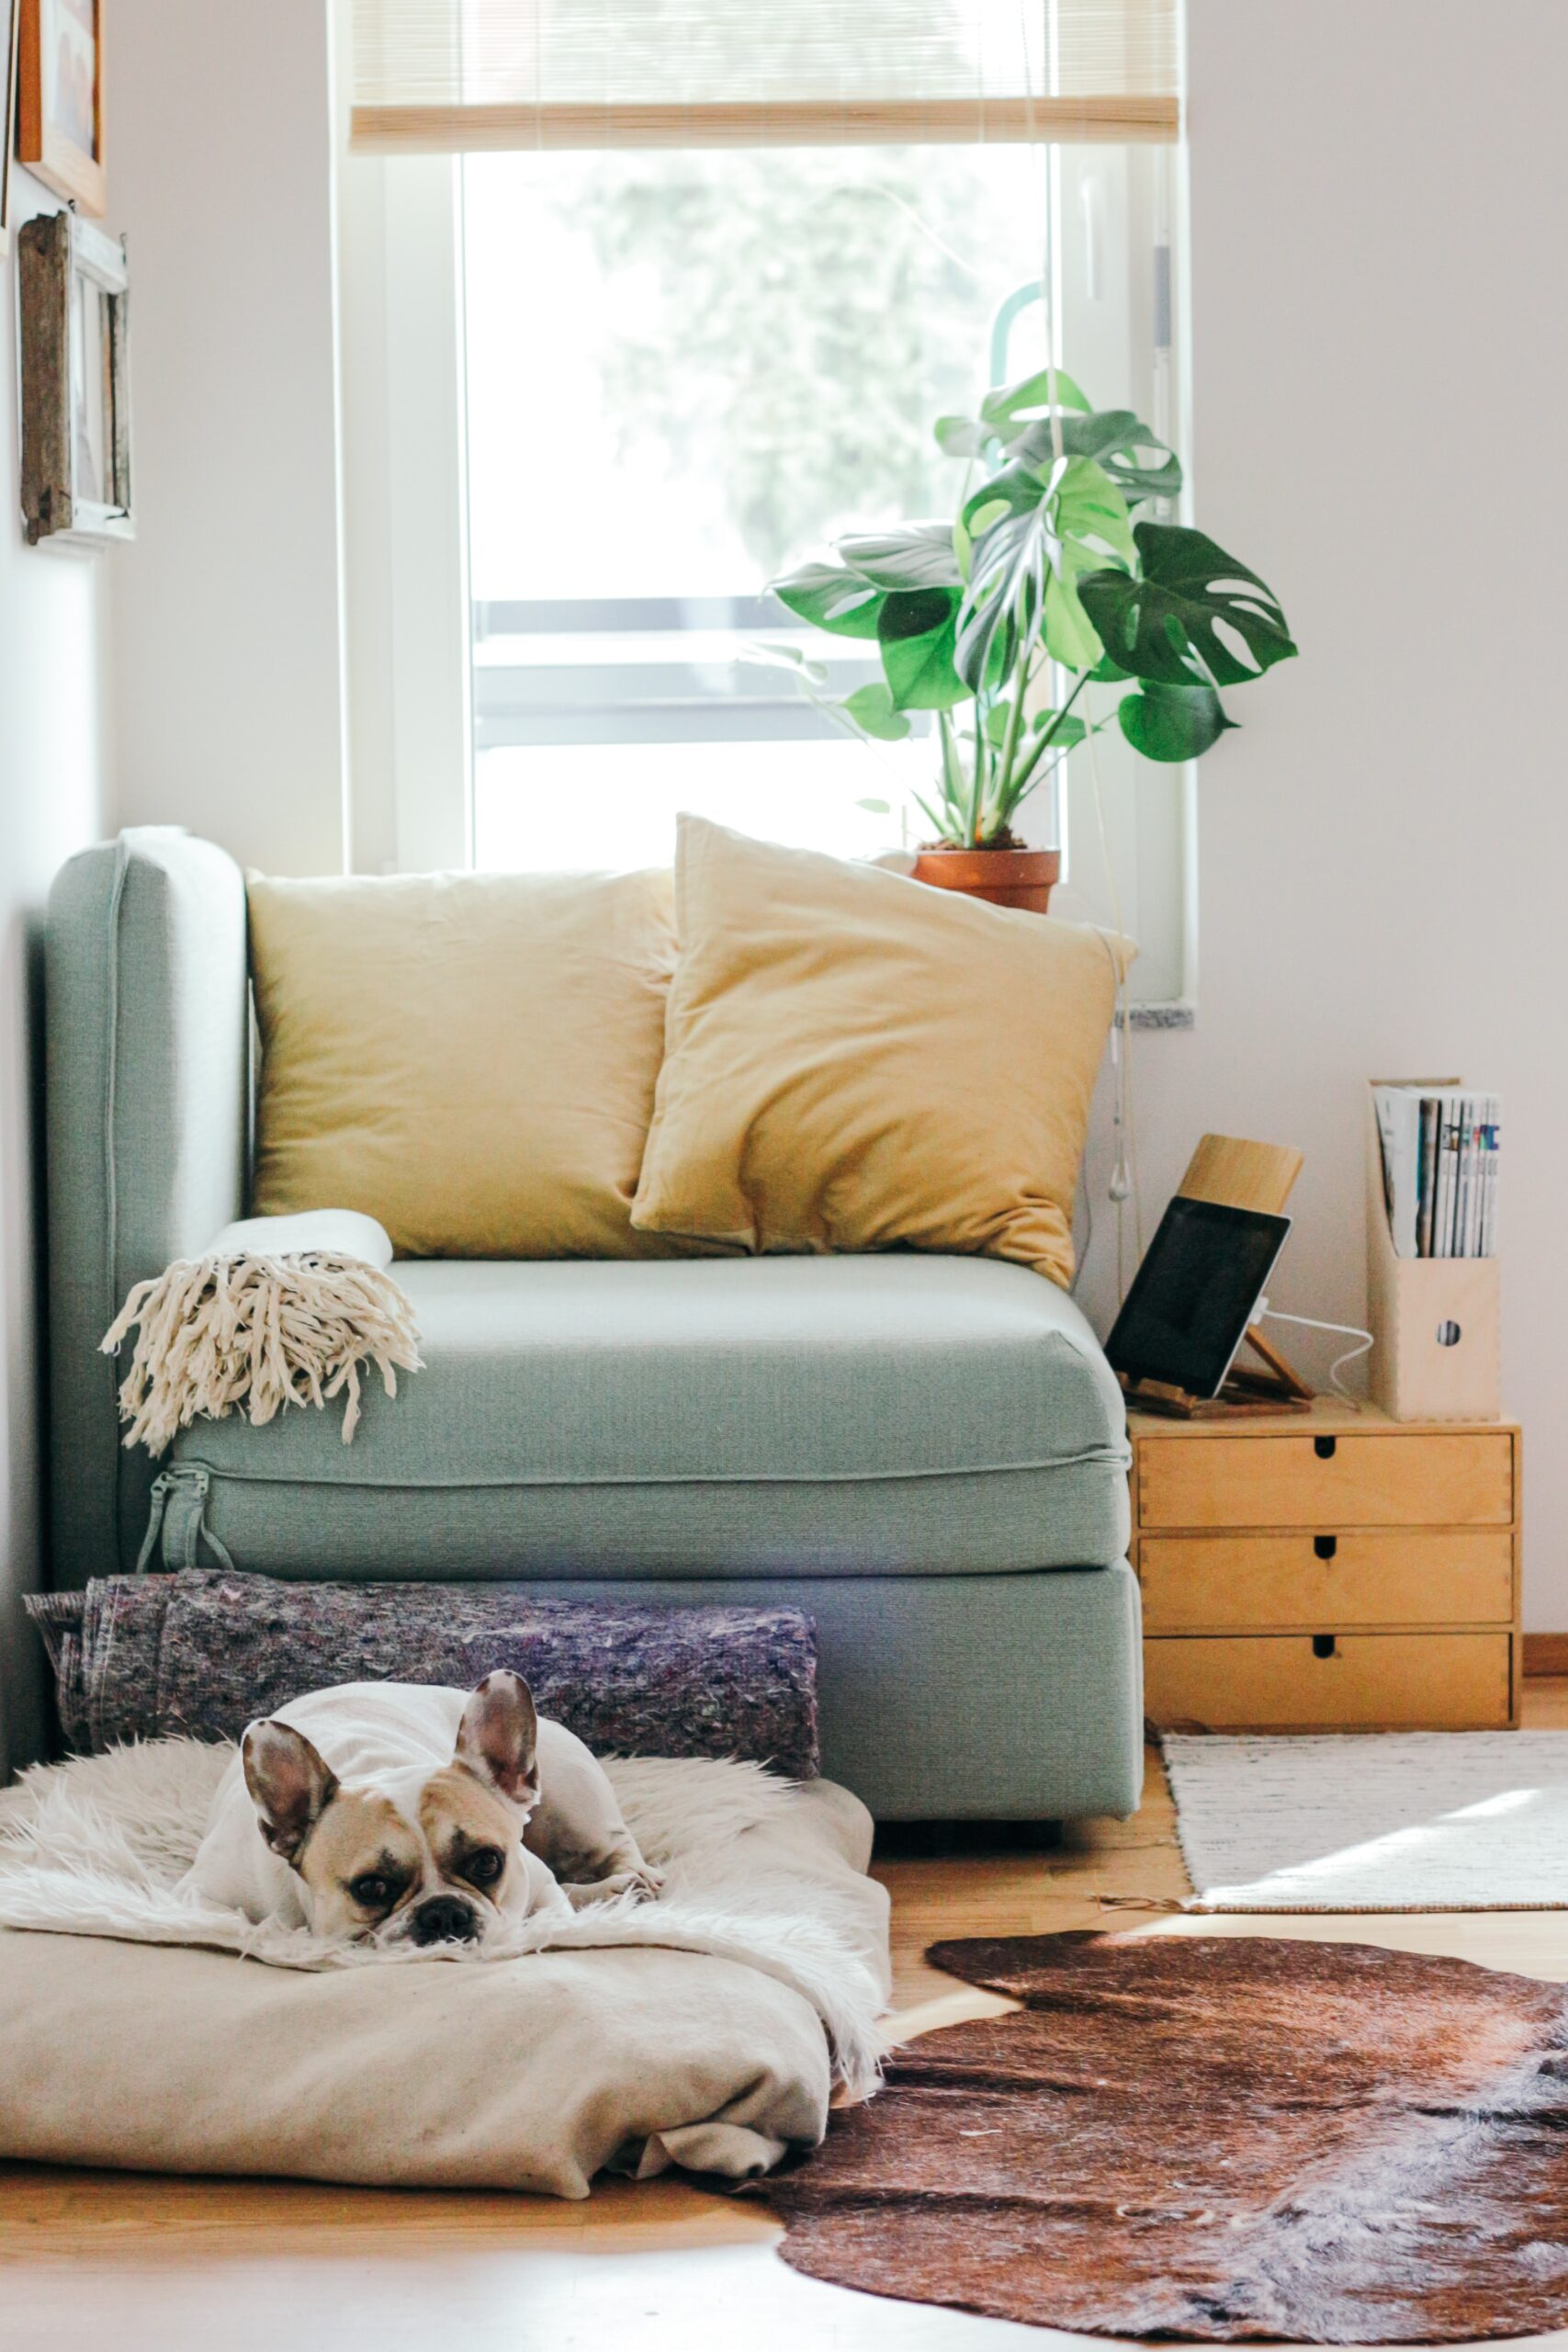 Small dog laying on pillow in family room with a cozy nook